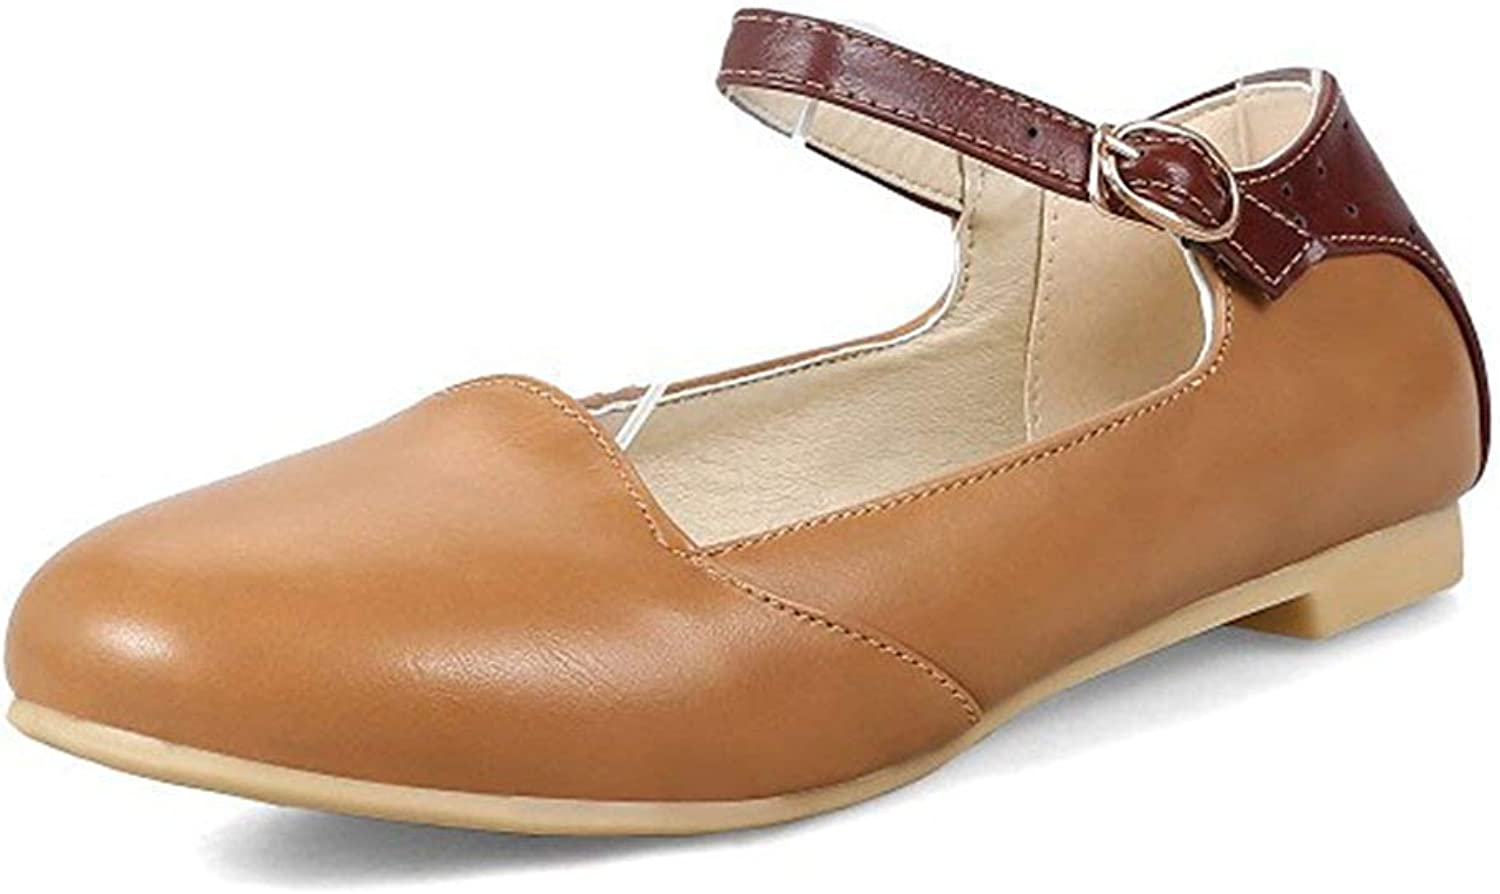 Unm Women's Comfort Low Cut Round Toe Buckled Driving Cars Dressy Ankle Strap Mary-Jane Flats shoes